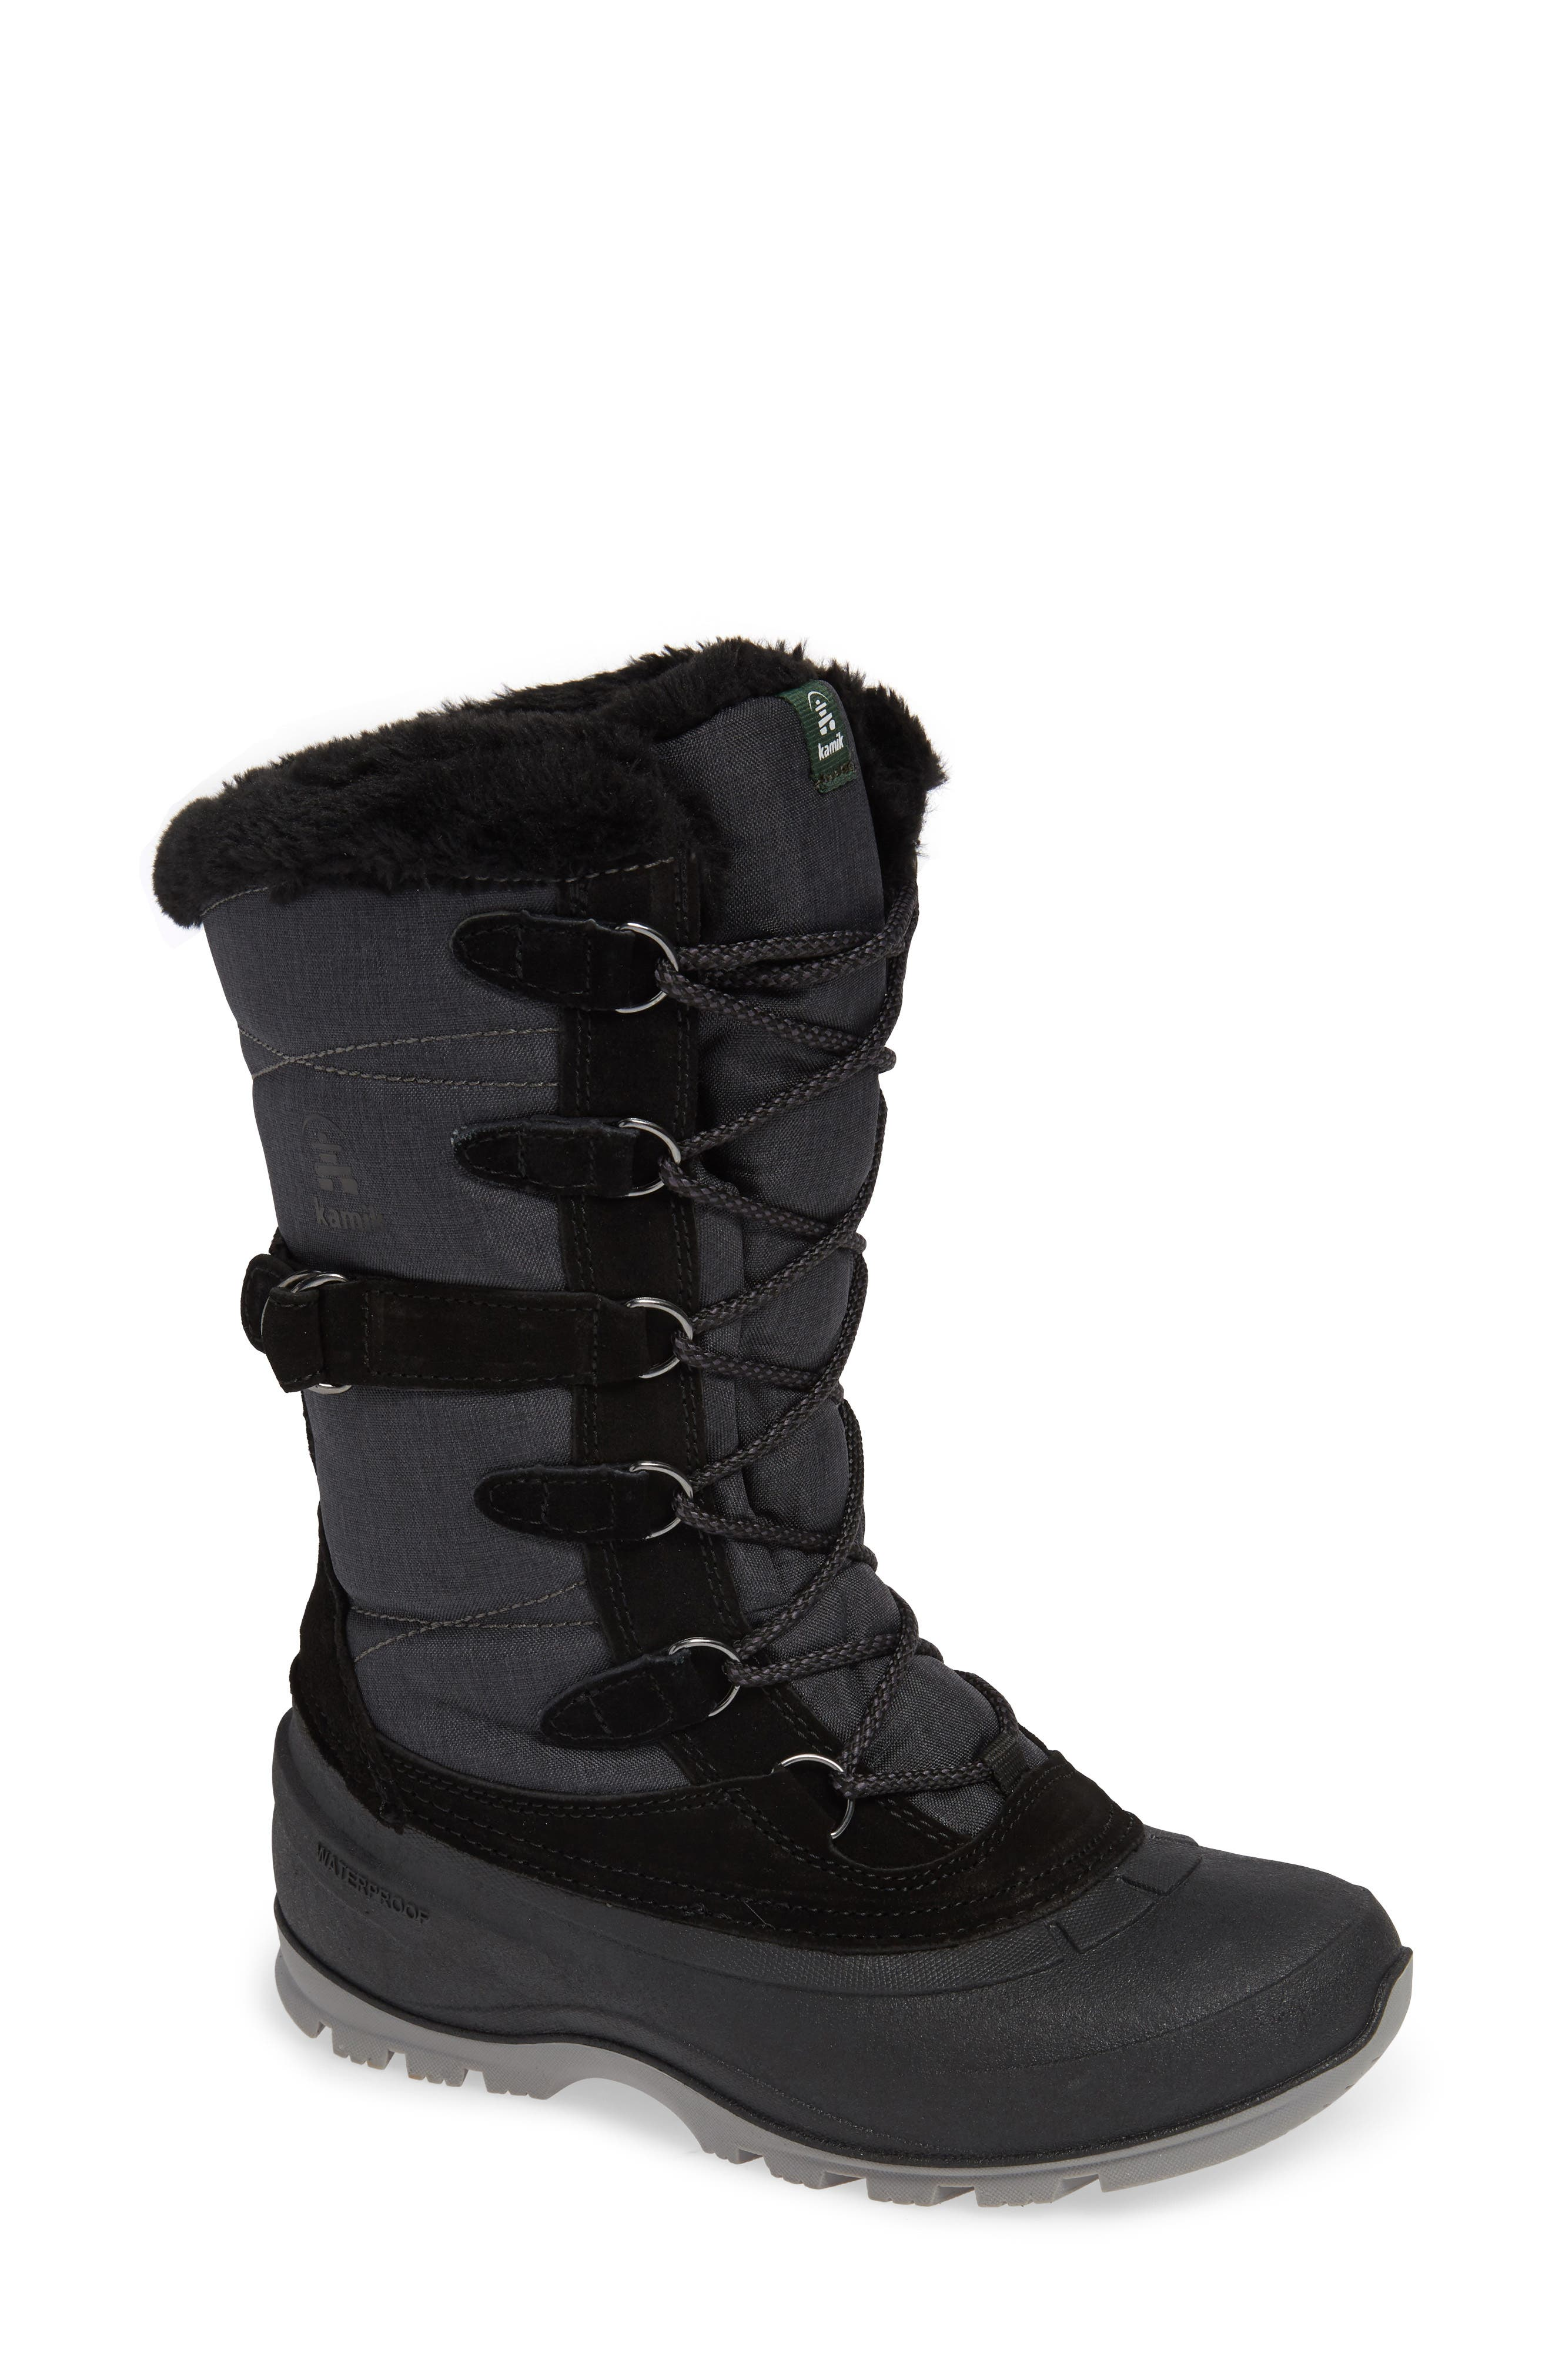 KAMIK, Snovalley2 Waterproof Thinsulate<sup>®</sup>-Insulated Snow Boot, Main thumbnail 1, color, 001